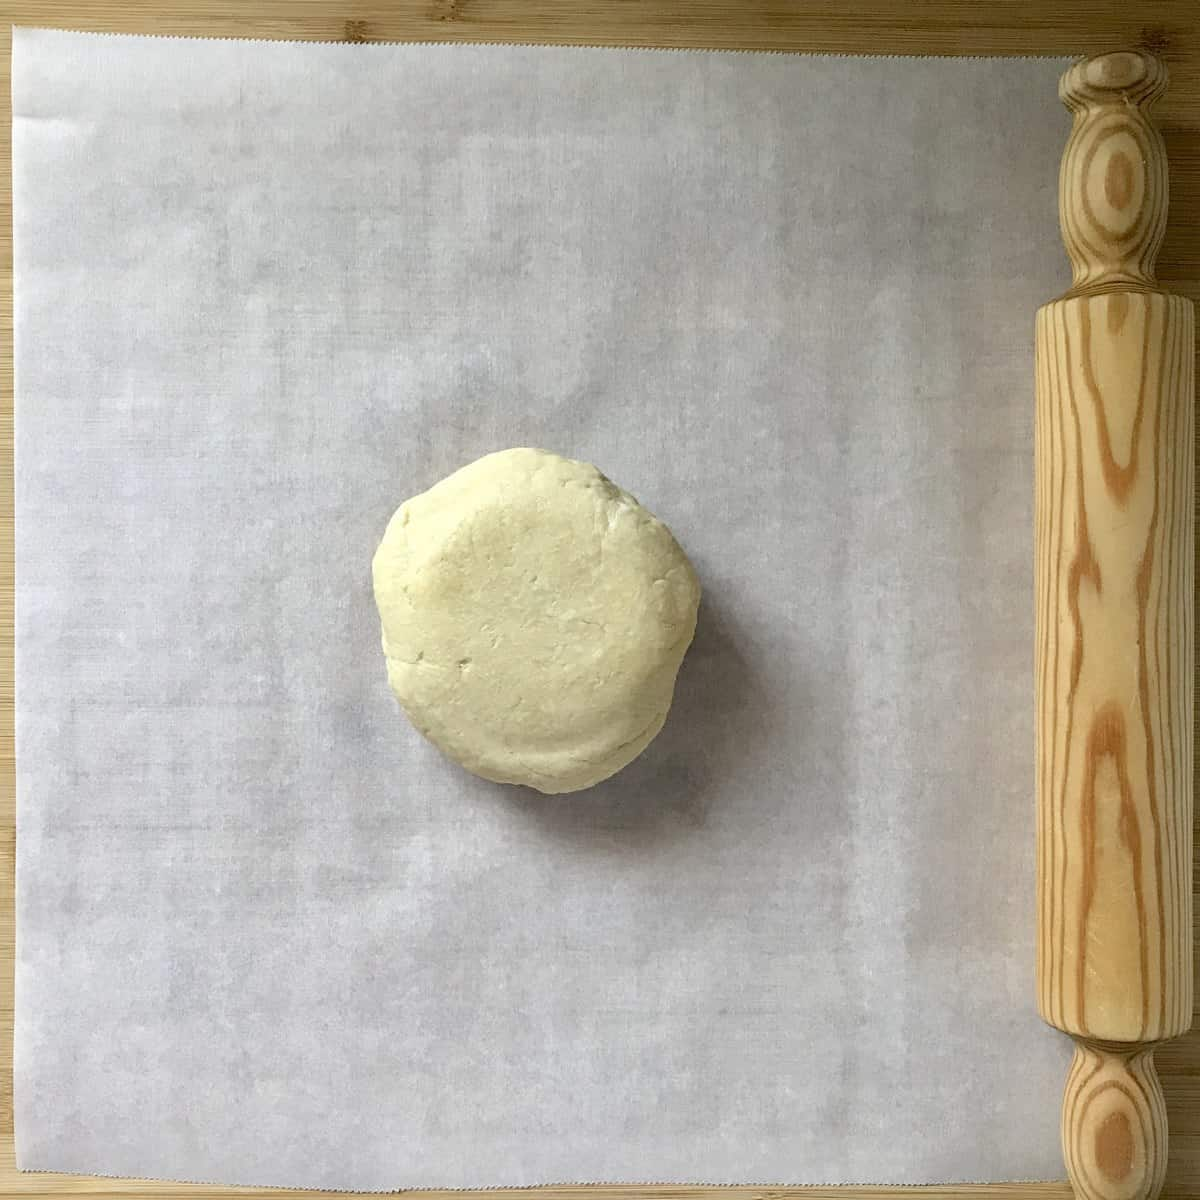 A ball of crostata dough on parchment paper, next to a rolling pin.